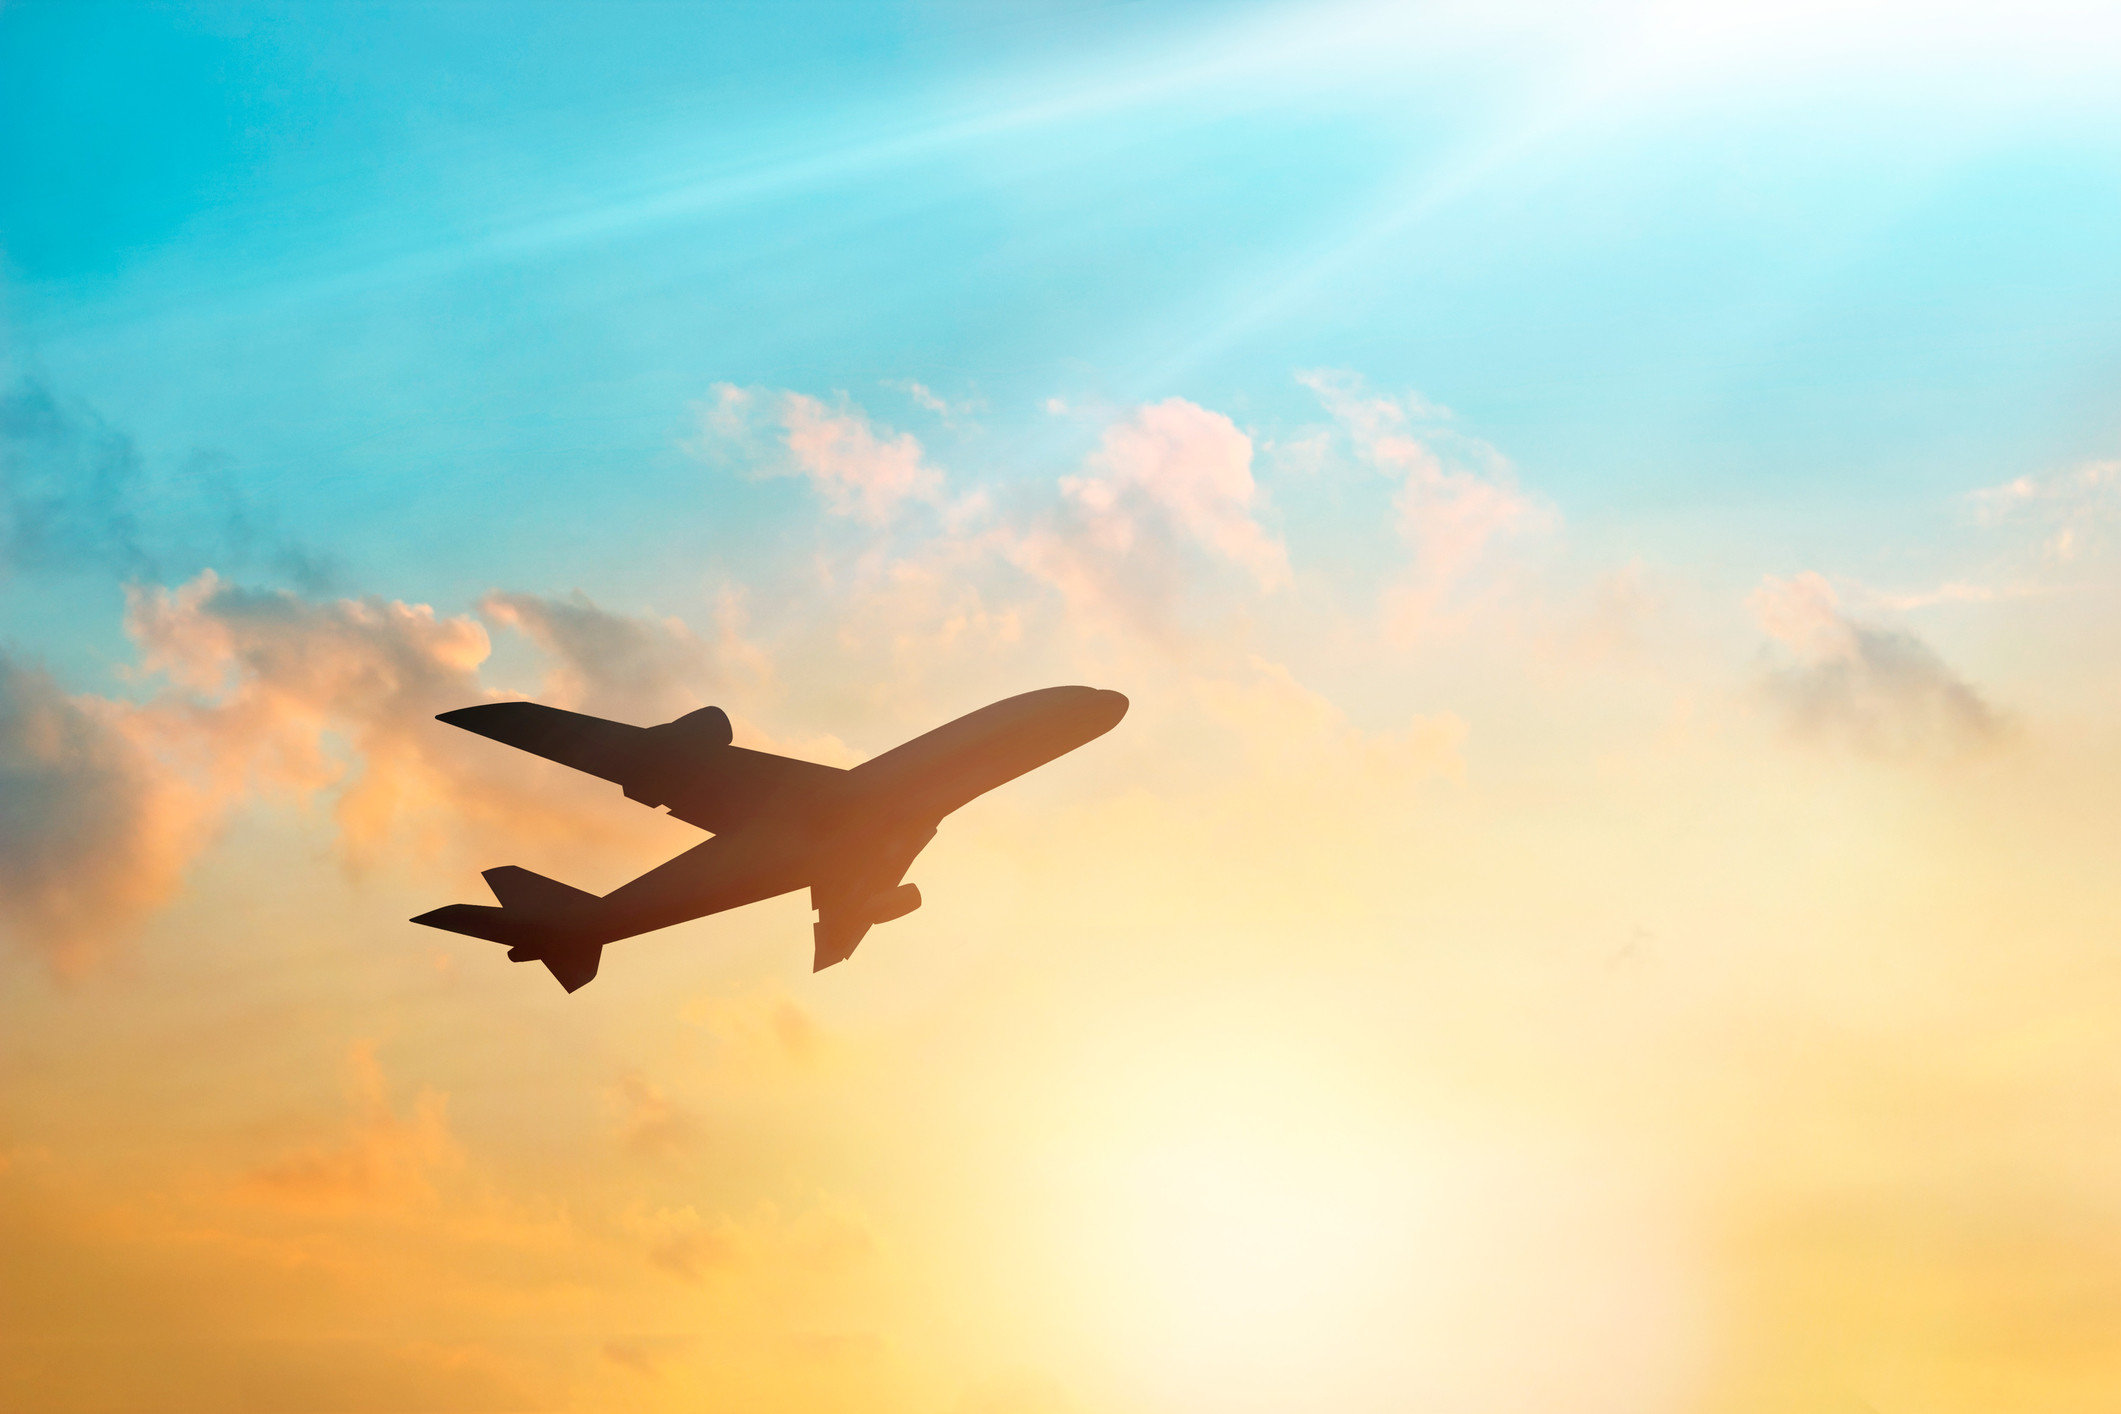 Flights Travel Tips sky outdoor flying plane airplane Sunset air travel aircraft flight clouds aviation atmosphere daytime atmosphere of earth airline jet aerospace engineering cloudy cloud transport airliner air sunlight wing computer wallpaper meteorological phenomenon sunrise afterglow dawn narrow body aircraft dark day